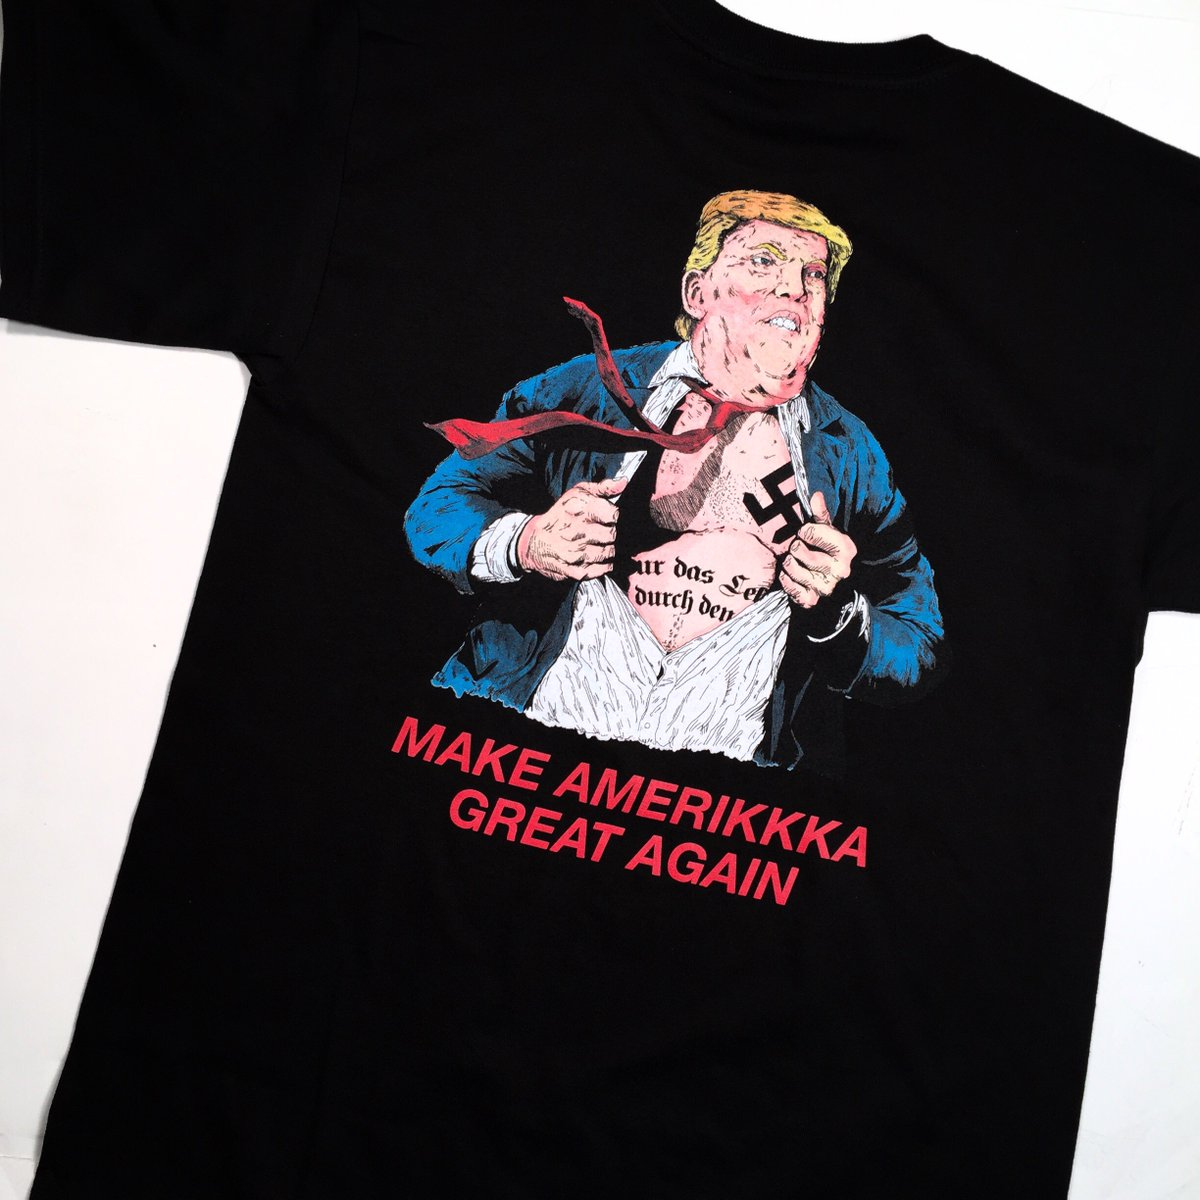 Sat we are releasing our #FuckTrump Tee along w/ other